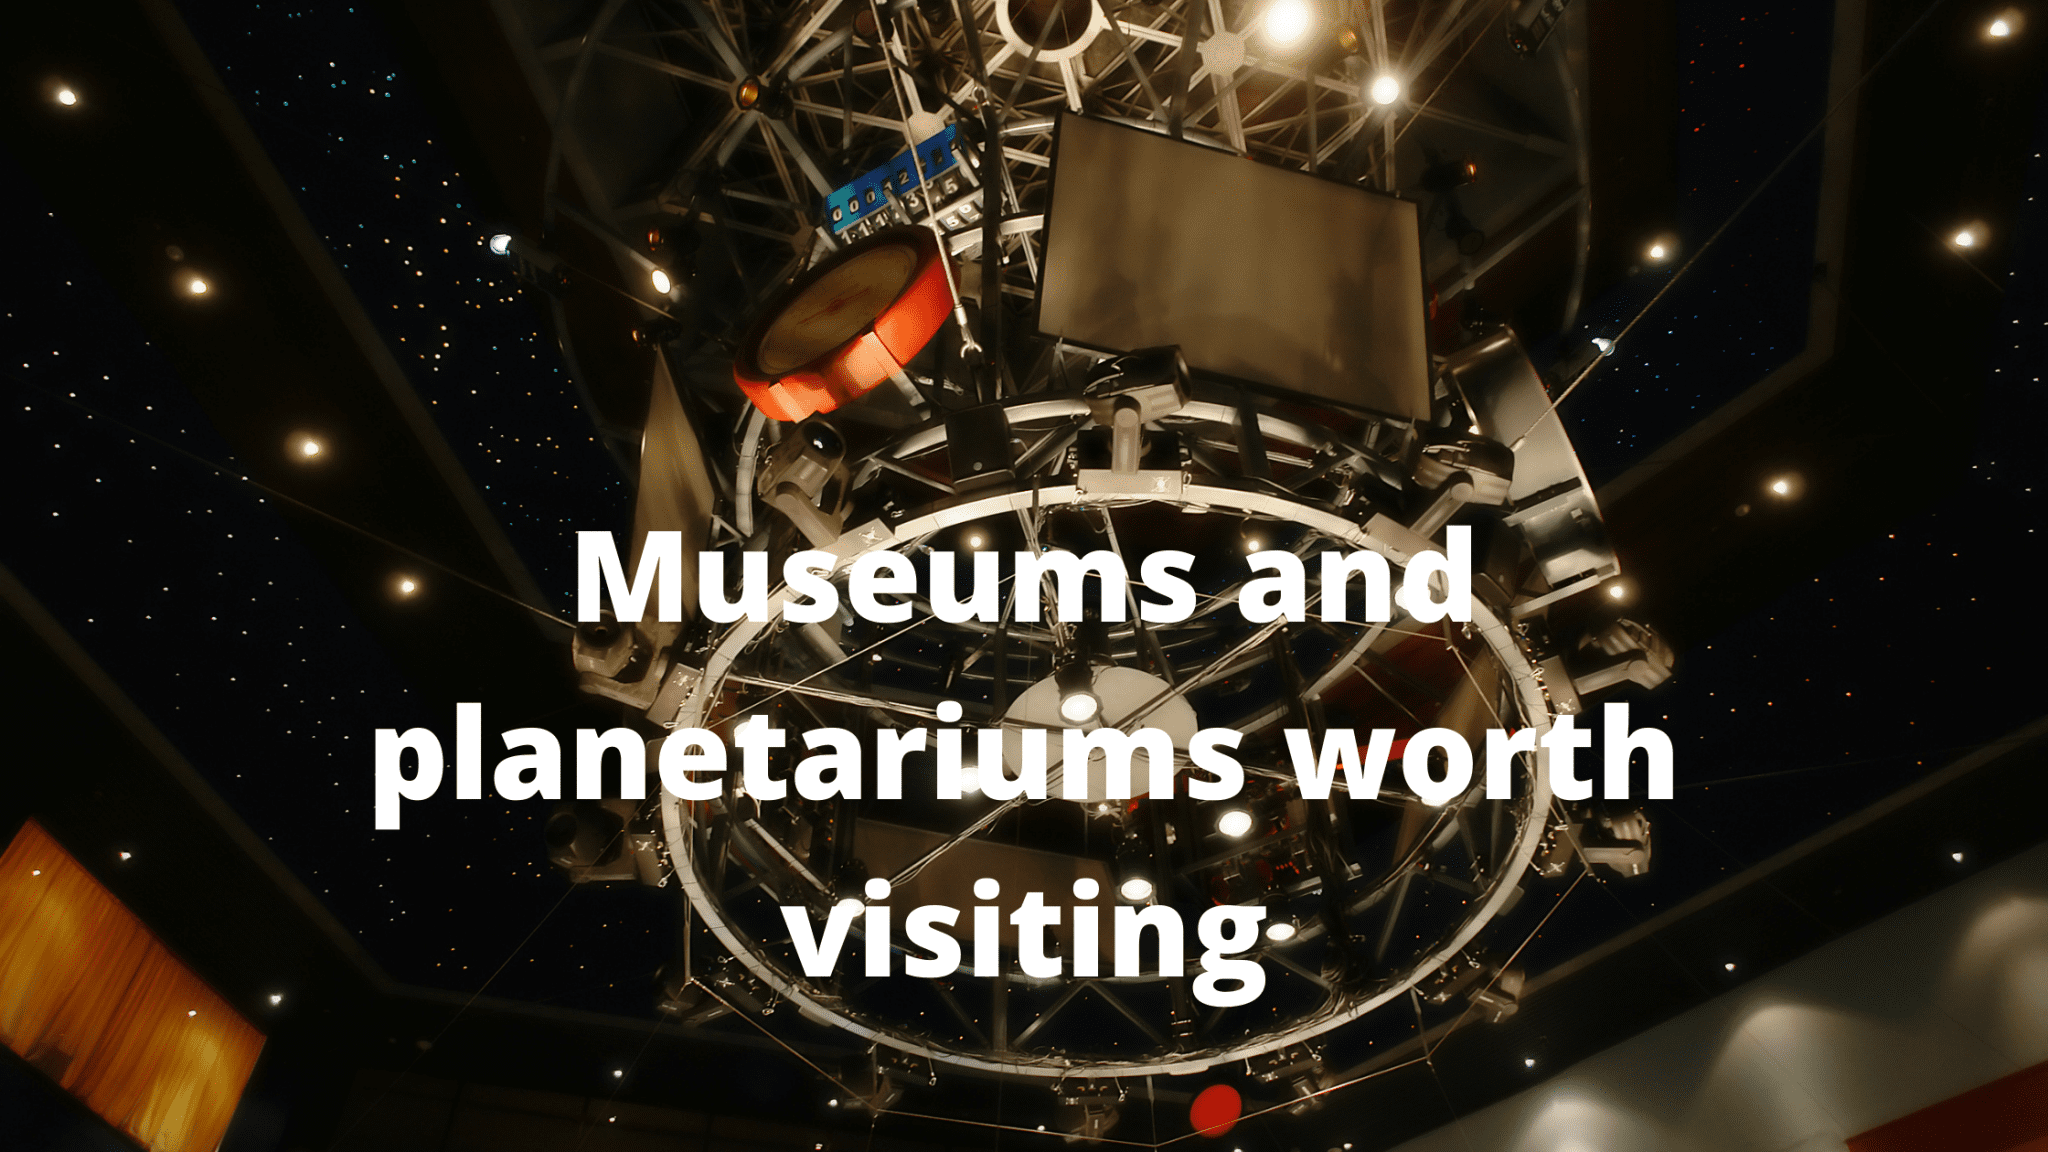 Museums and planetariums worth visiting